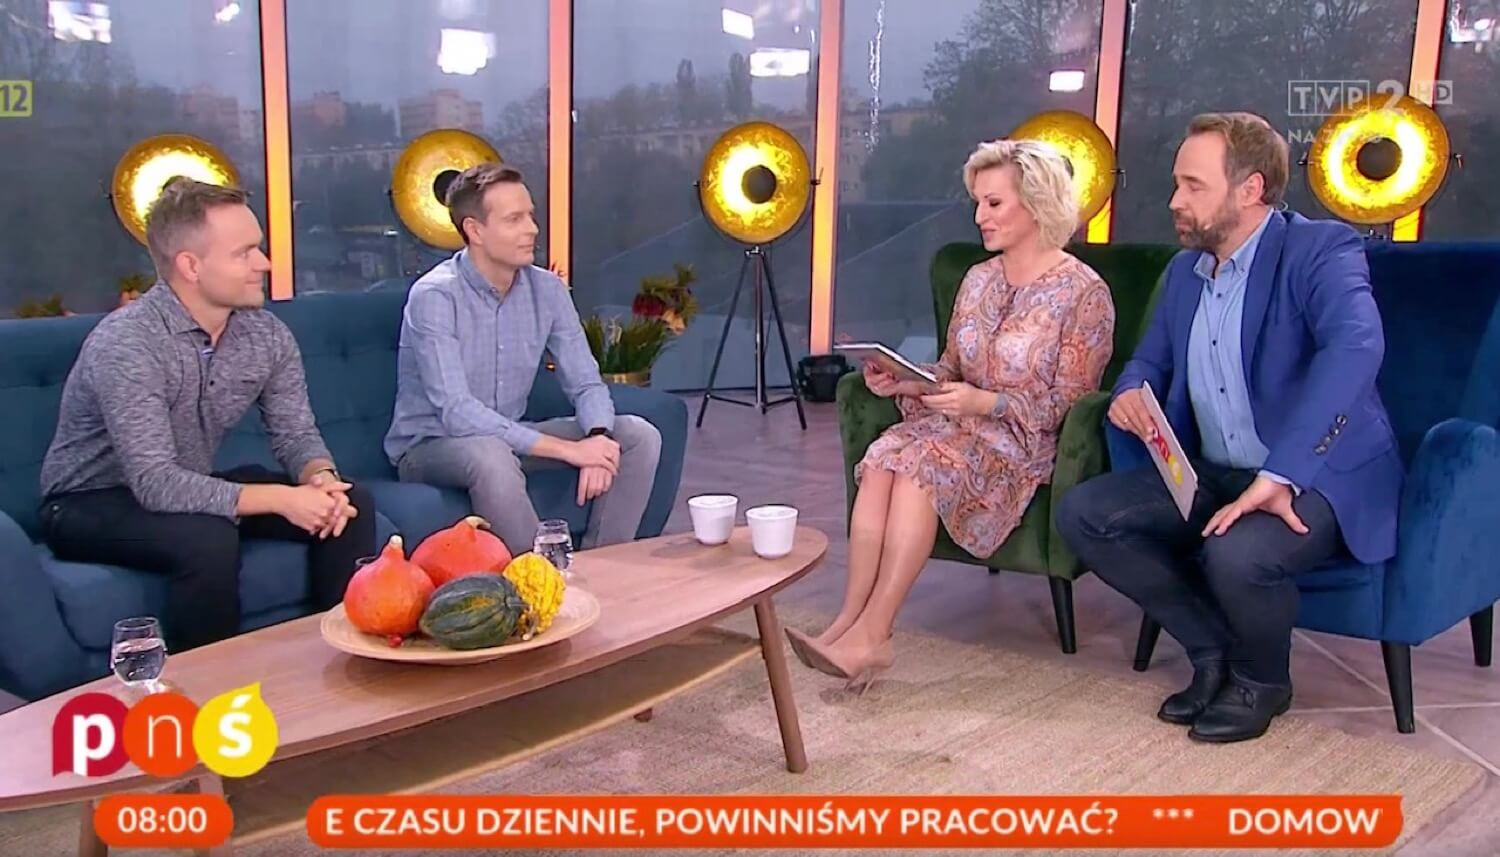 TV appearance! Nozbe's TGIF - Thank Goodness It's Friday on Polish national television - how to work smarter?